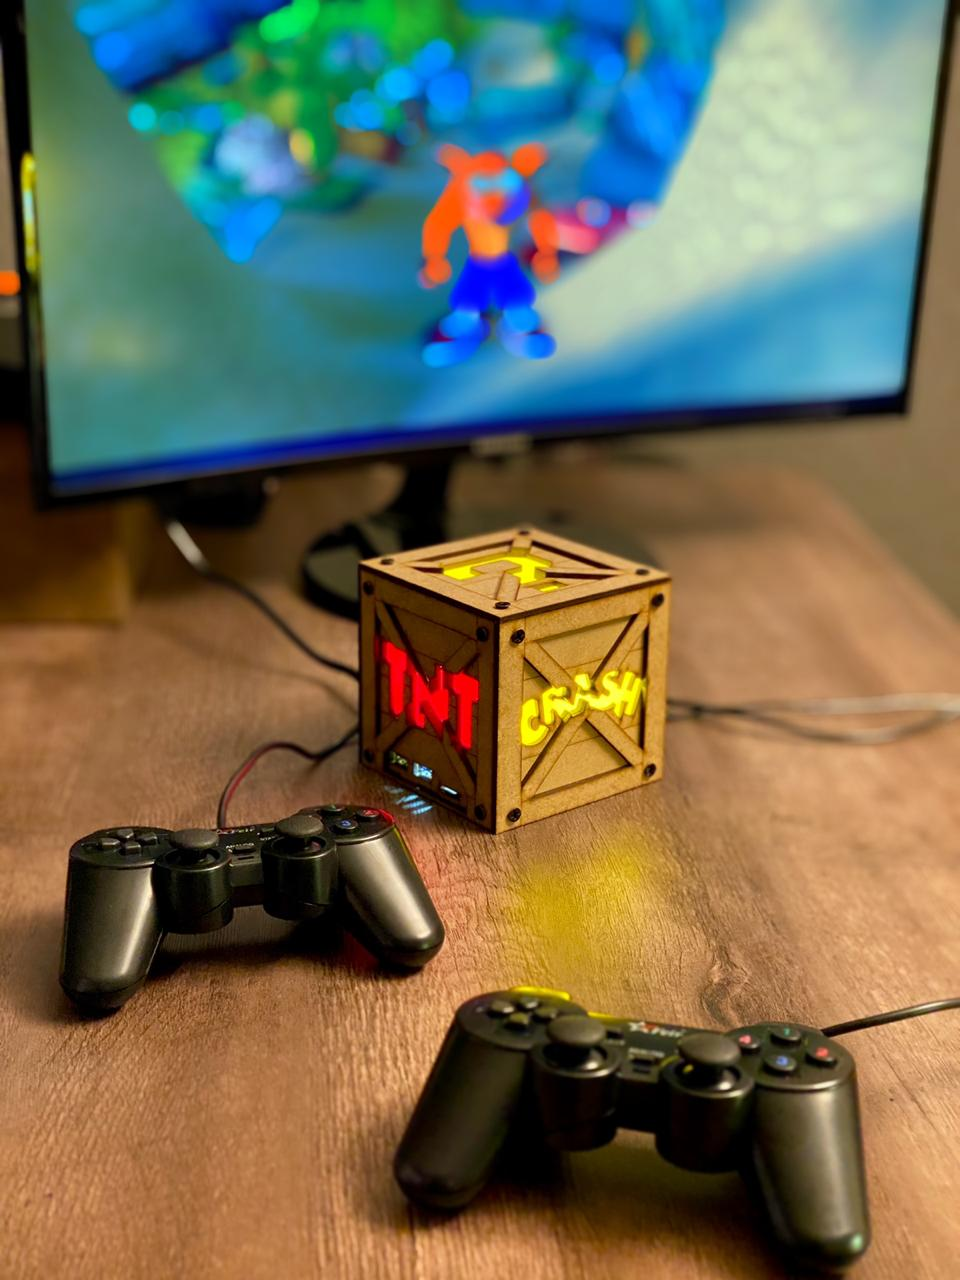 Cubo Retrô Box Crash: Fliperama Arcade Game (20.000 Jogos) PlayStation/Nintendo/SNES/Mega Drive/Sega Saturn